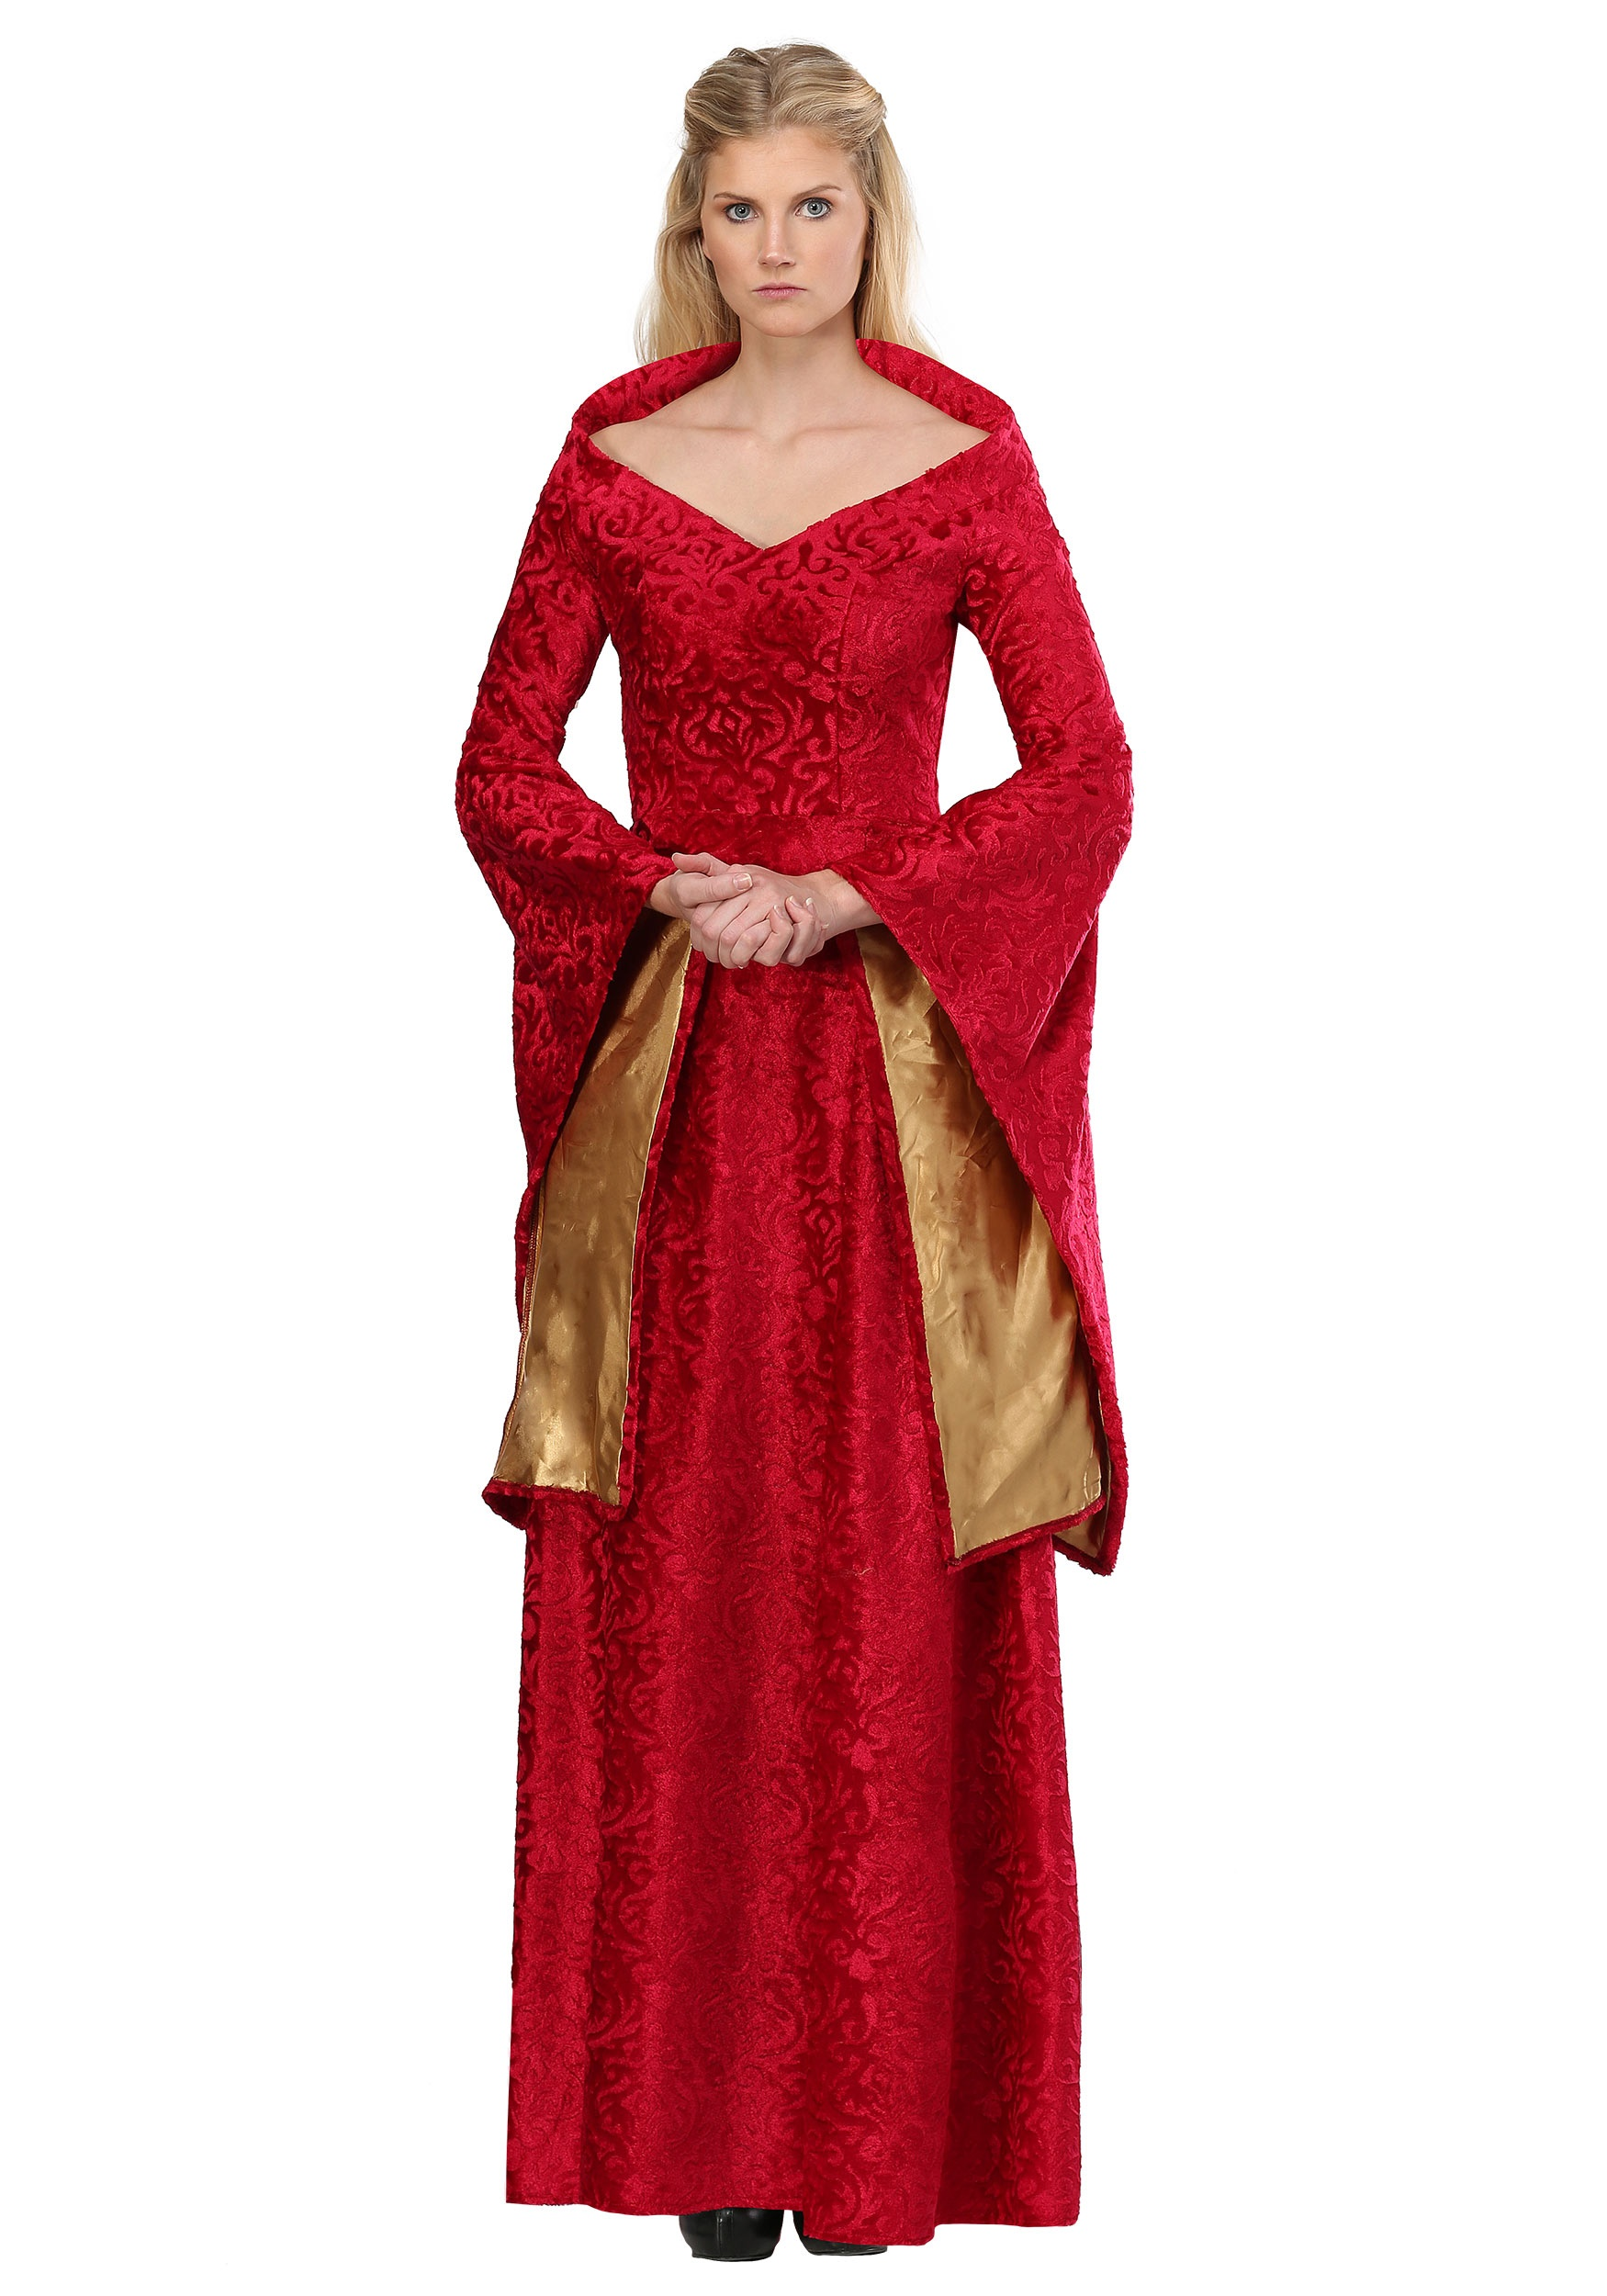 b4d58890 Adult Renaissance Costumes - Men's and Women's Costumes Renaissance